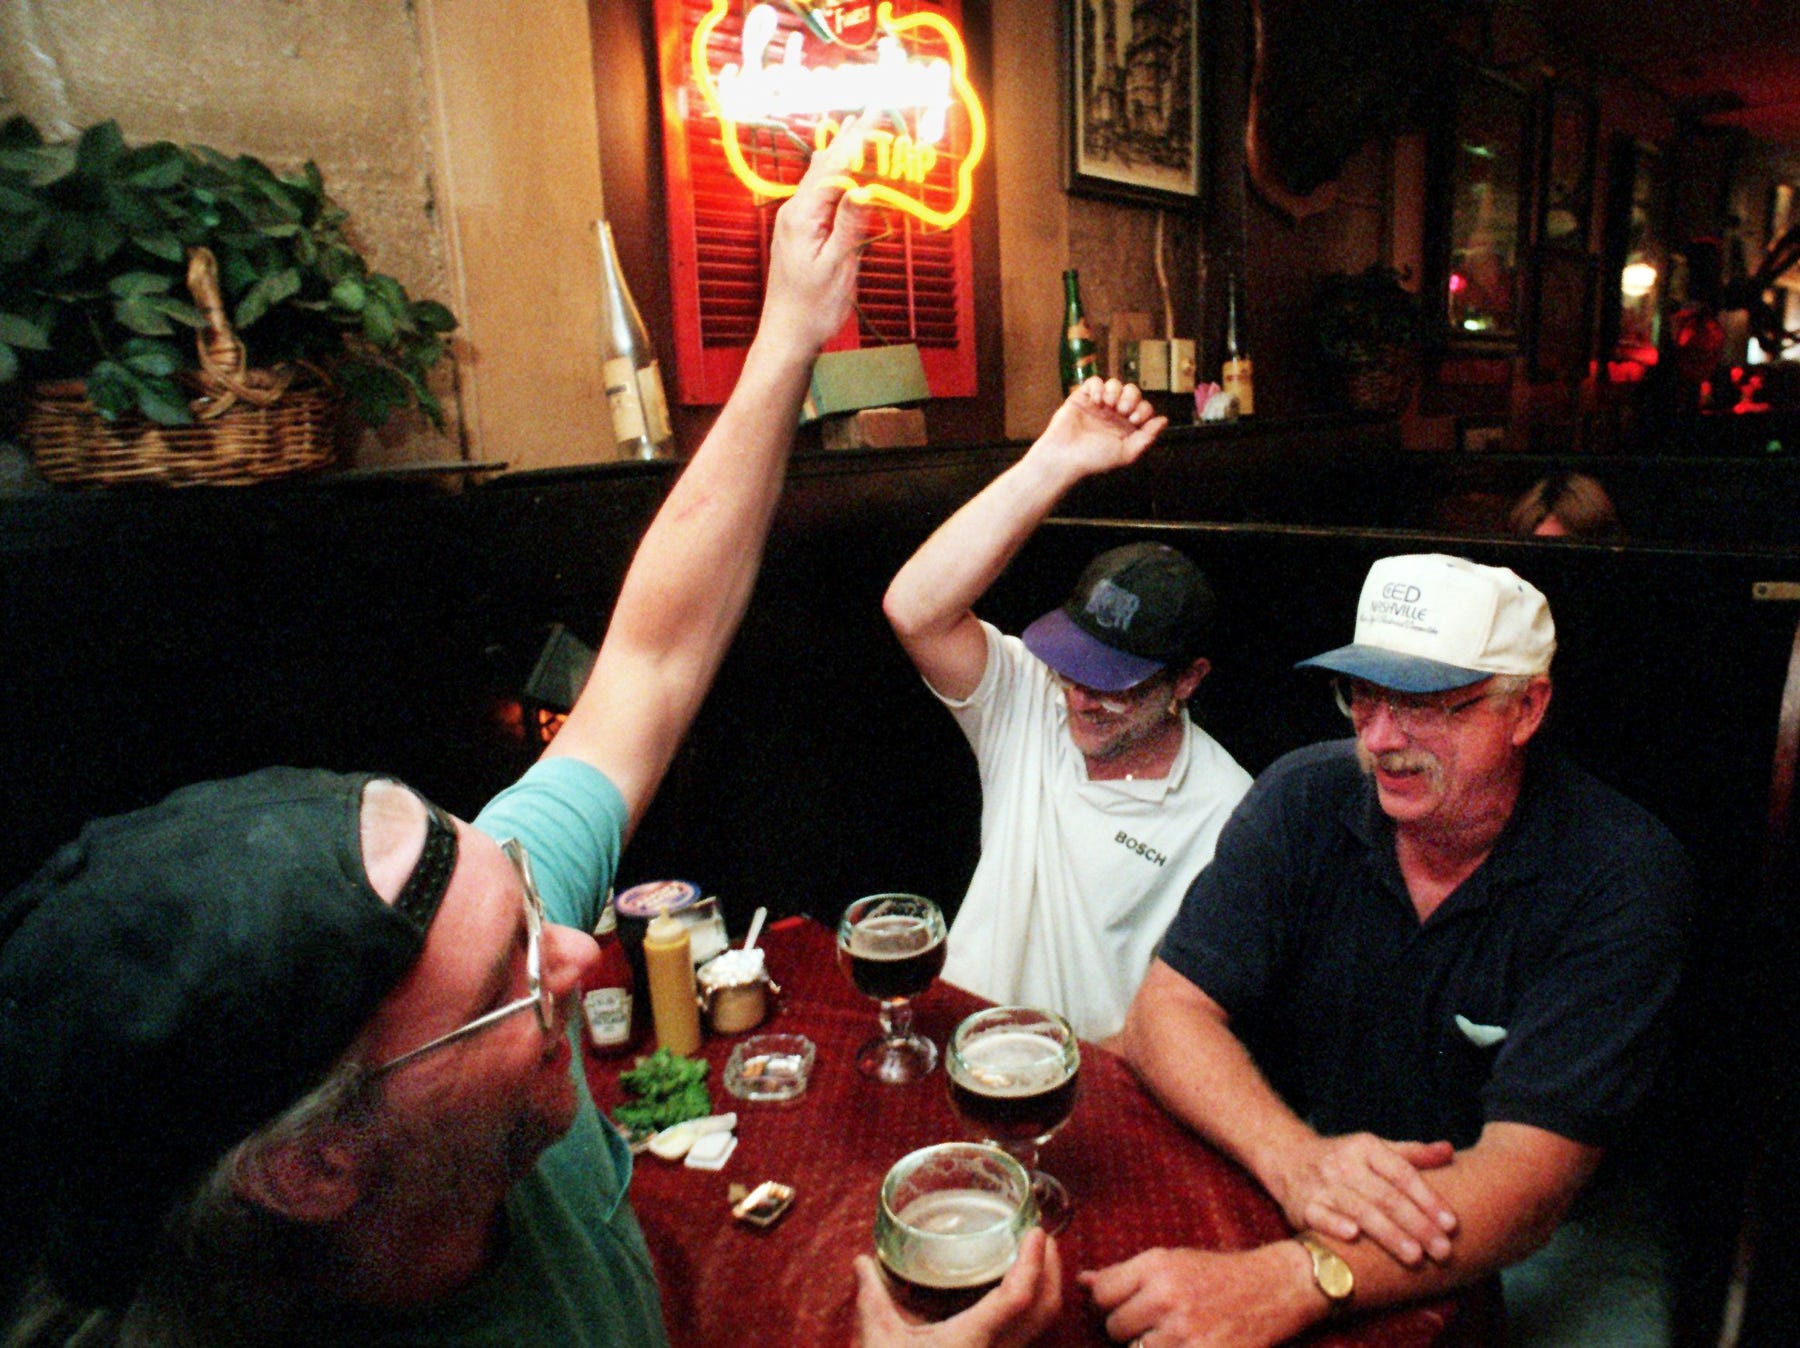 Benny Still, left, and Drew Denton high five as they enjoy beers with Keith Vaughn at the Gerst Haus Restaurant Aug. 27, 1998. Vaughn has been going to the Gerst Haus since it opened at the present local. The Gerst House will closed those doors for good Aug. 29 because of the football stadium.